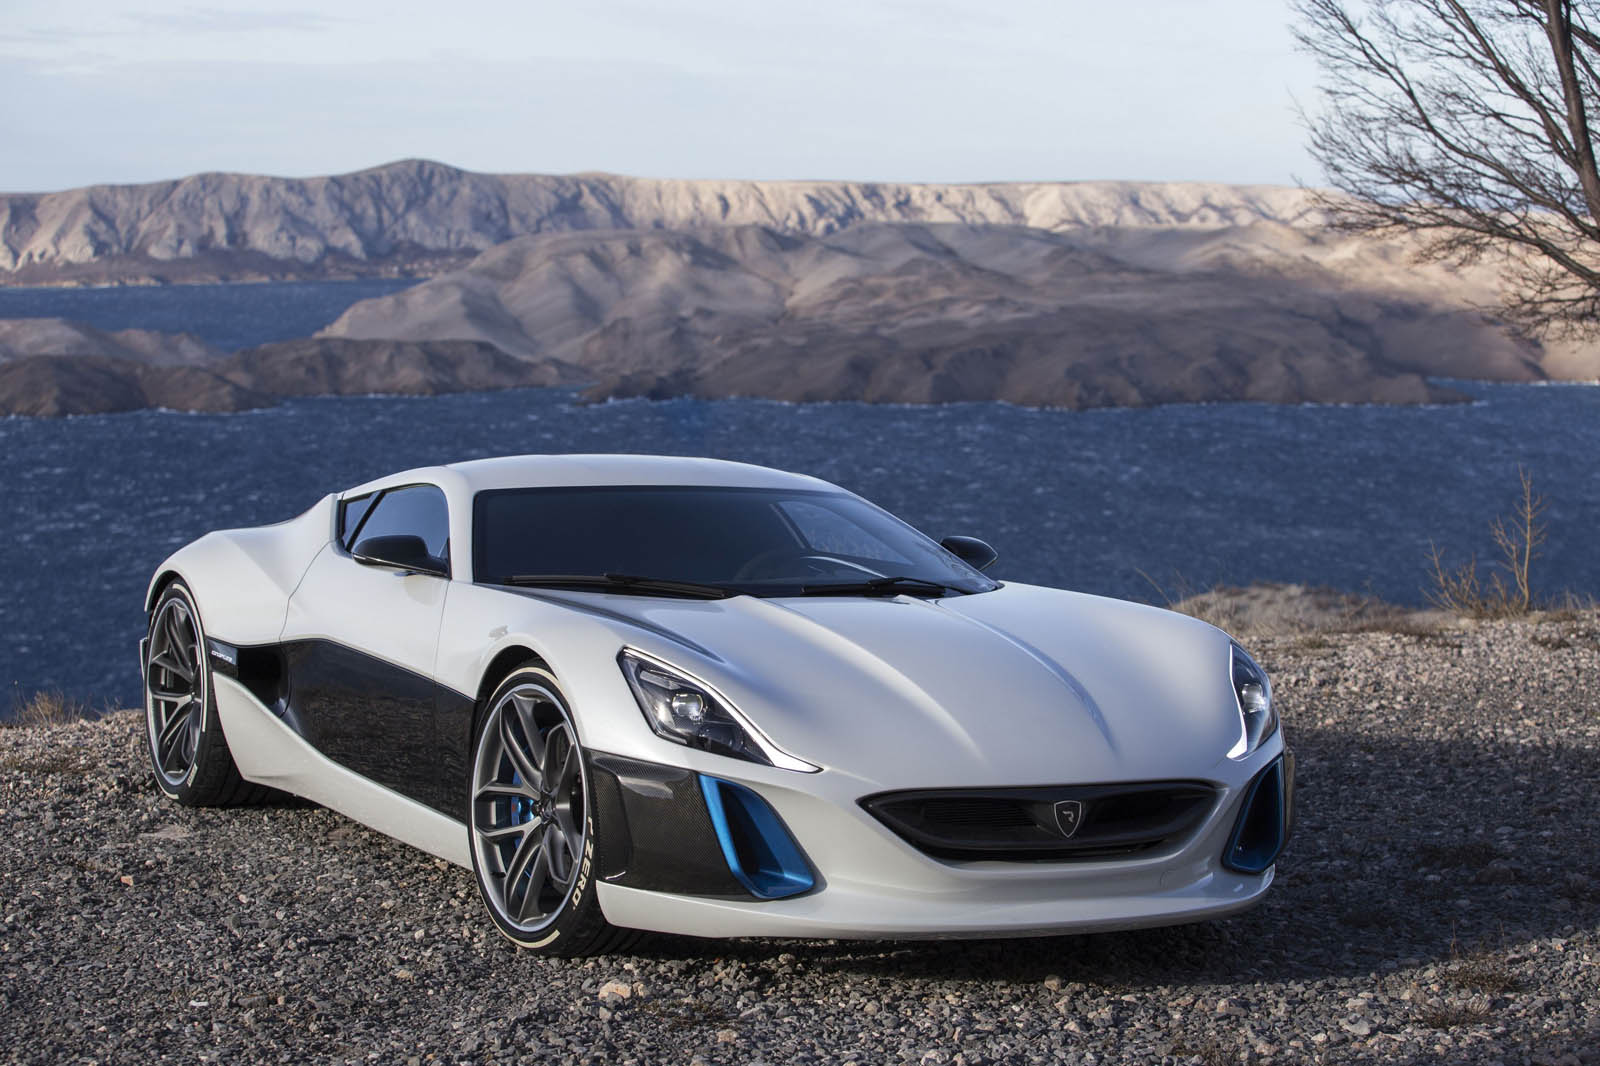 Rimac Concept_One in Geneva 2017 (24)